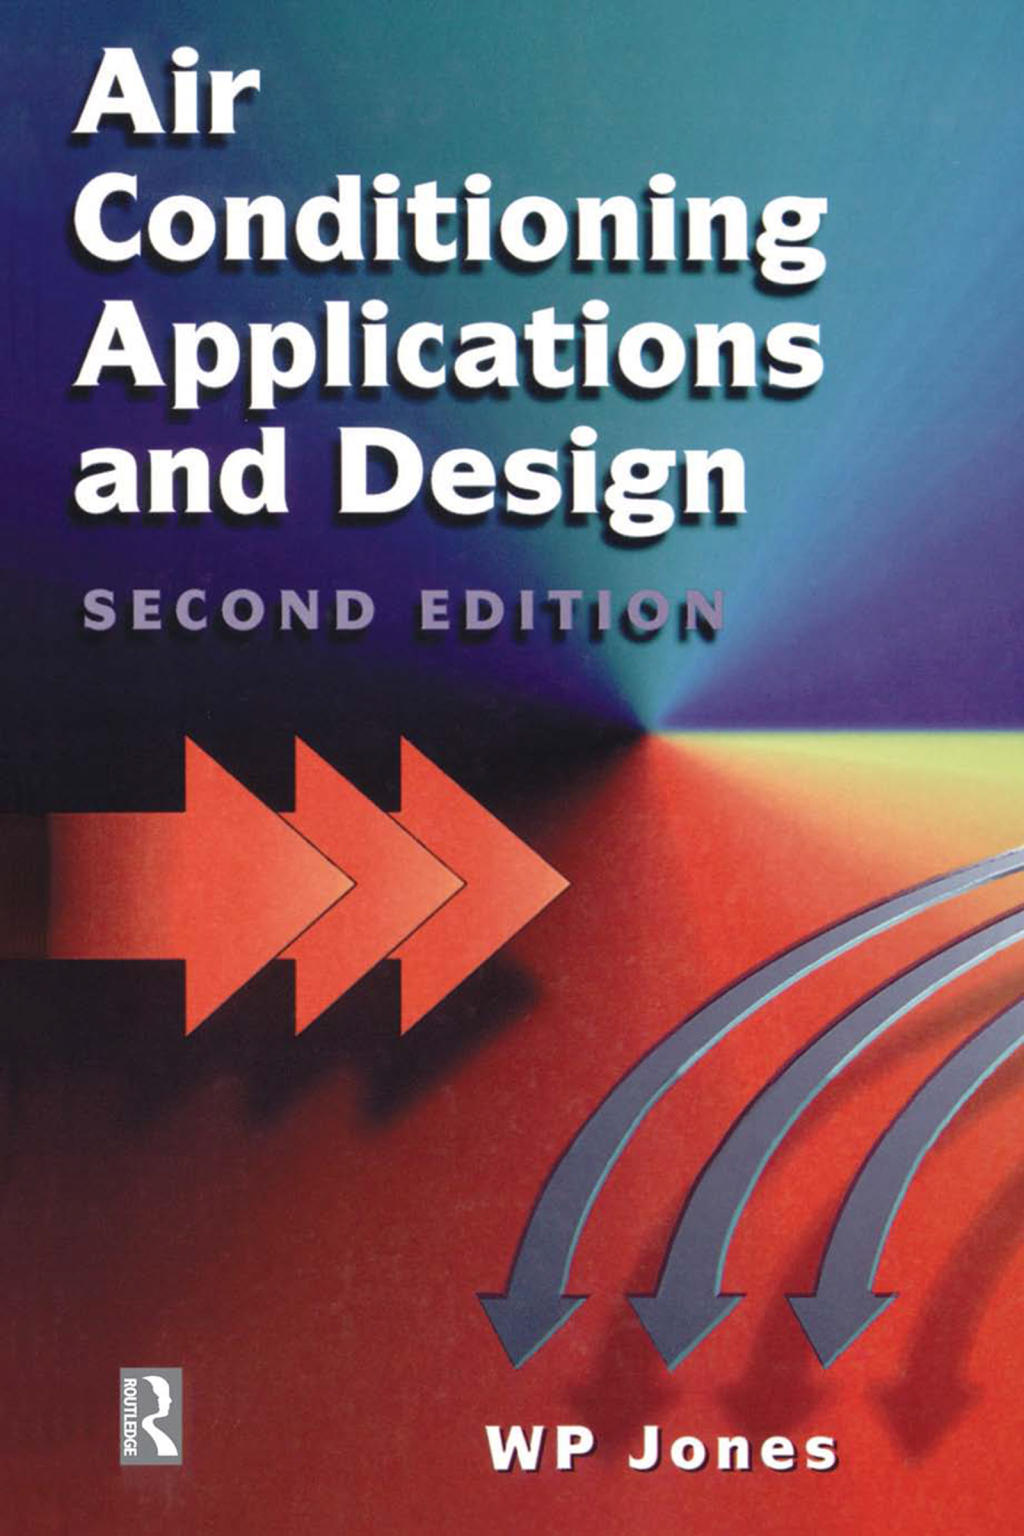 Air Conditioning Application and Design (ebook) eBooks